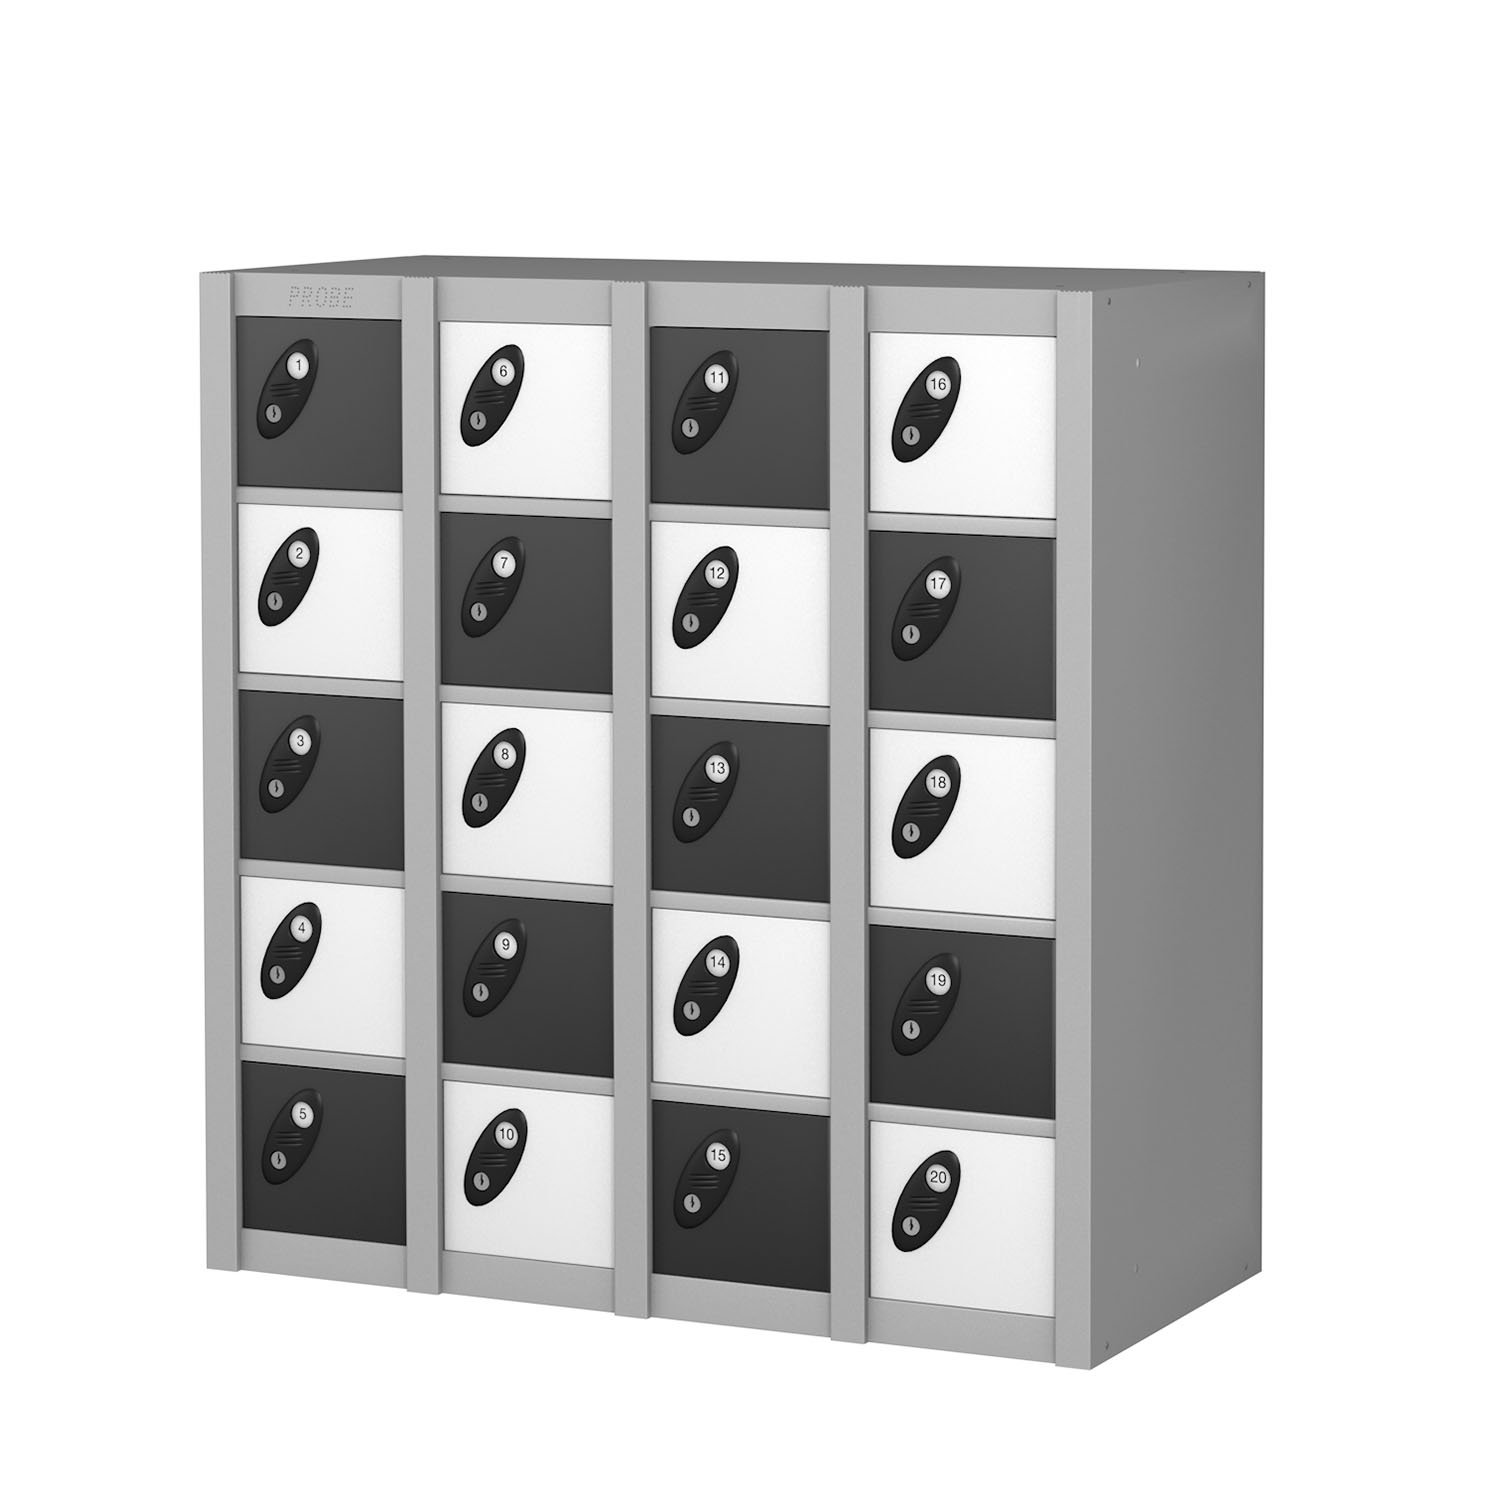 Probe 20 doors minibox lockers in black and white colour